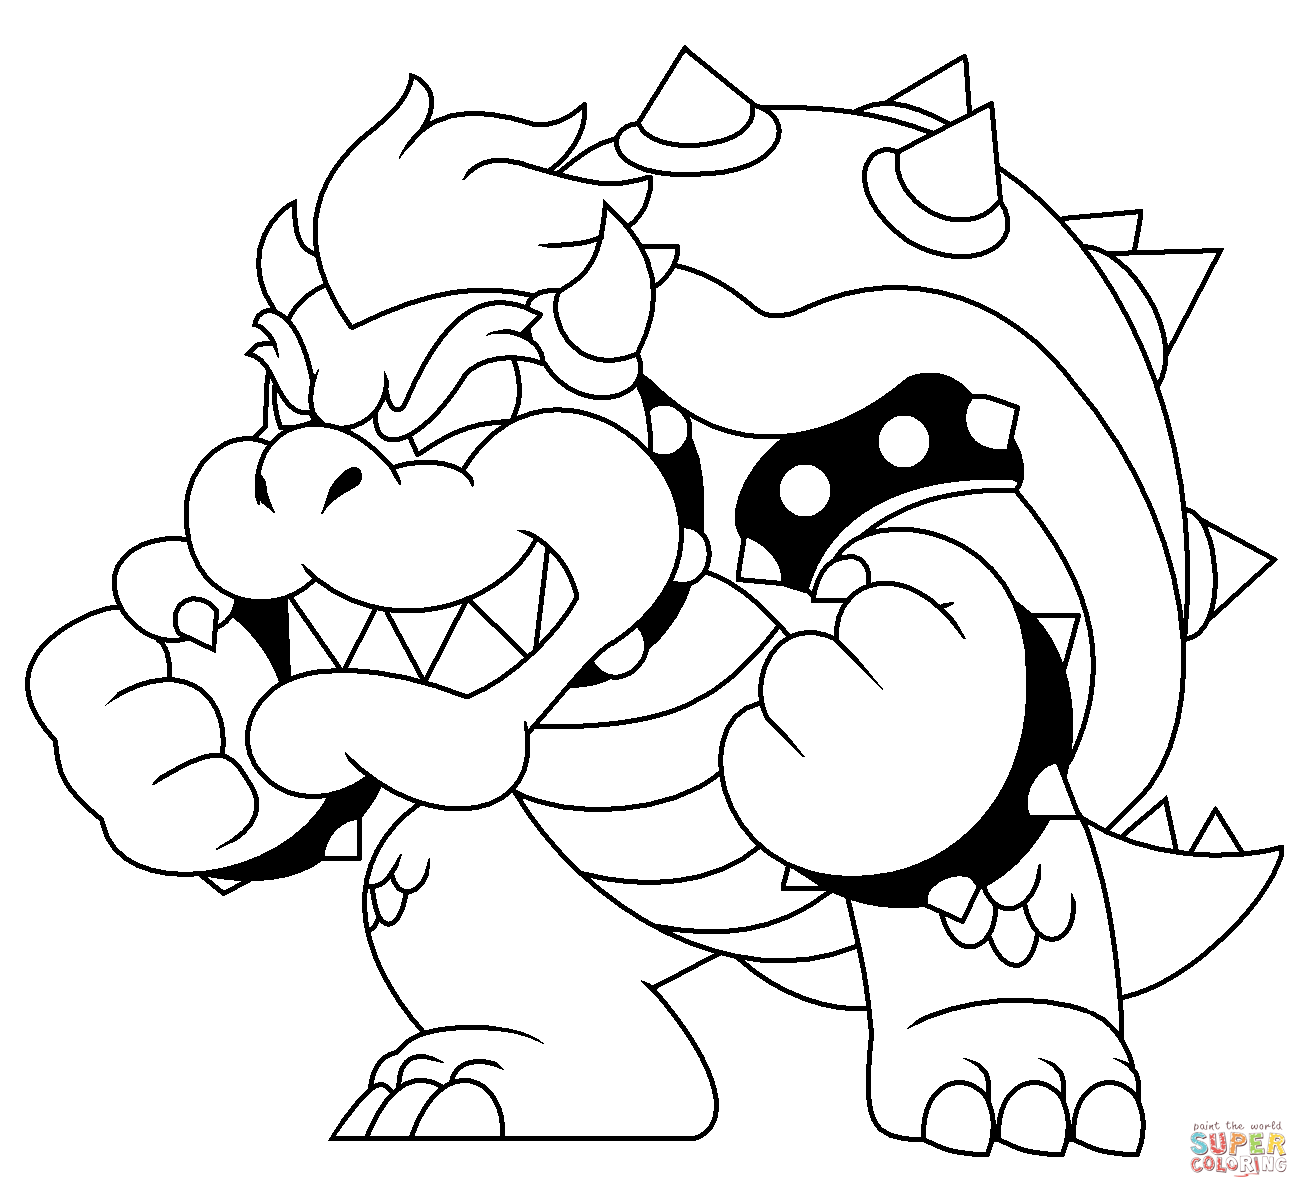 bowser picture bowser coloring bowser coloring pages dry bowser mario picture bowser